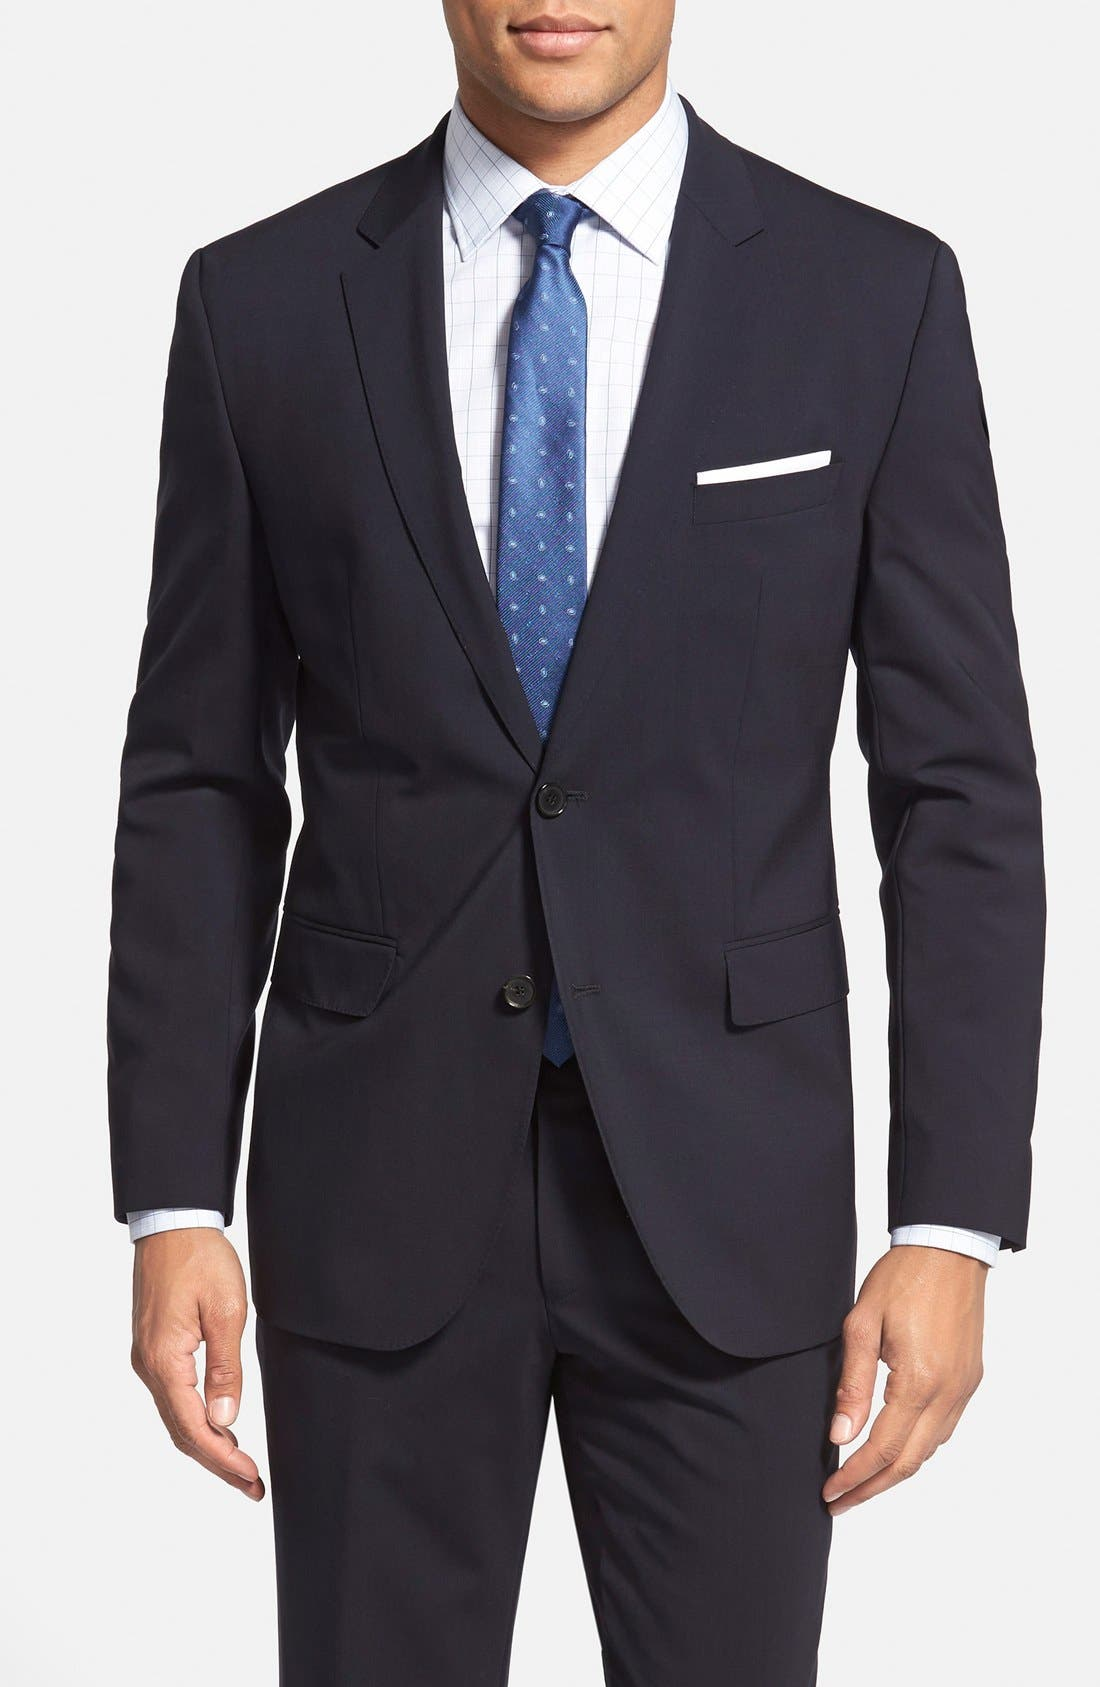 Alternate Image 3  - BOSS 'Jam/Sharp' Trim Fit Navy Suit